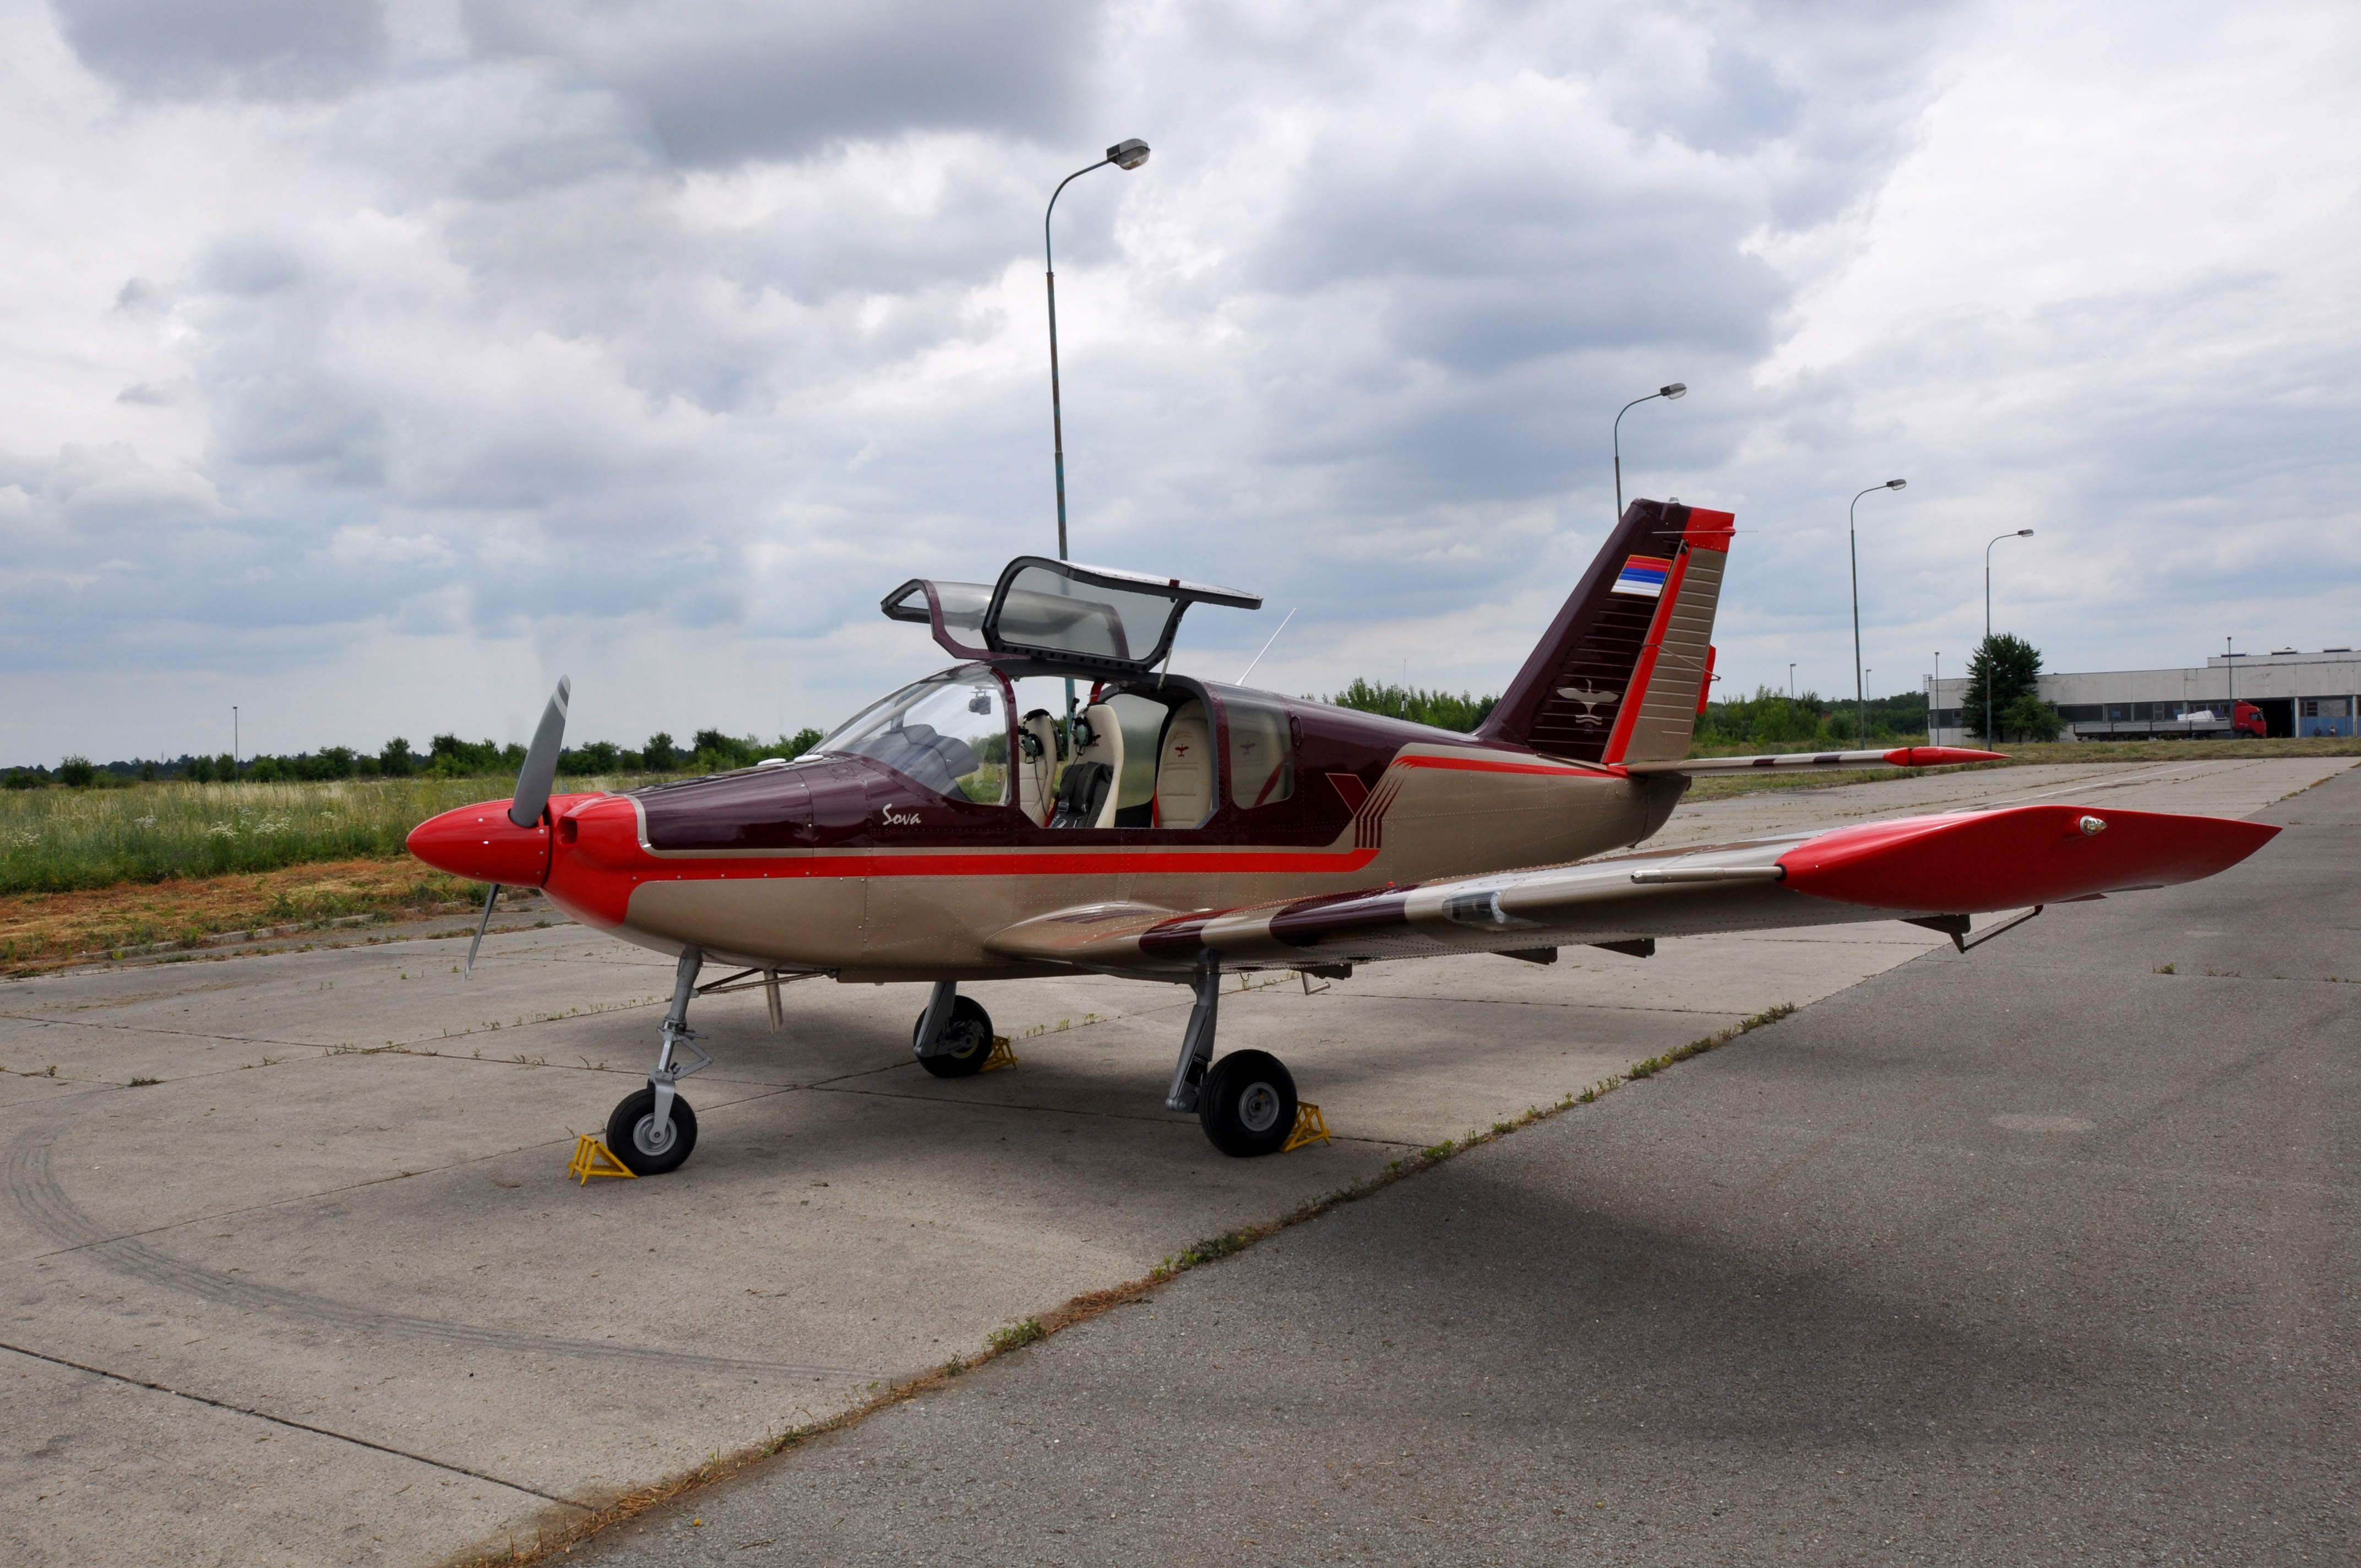 A red and white aircraft